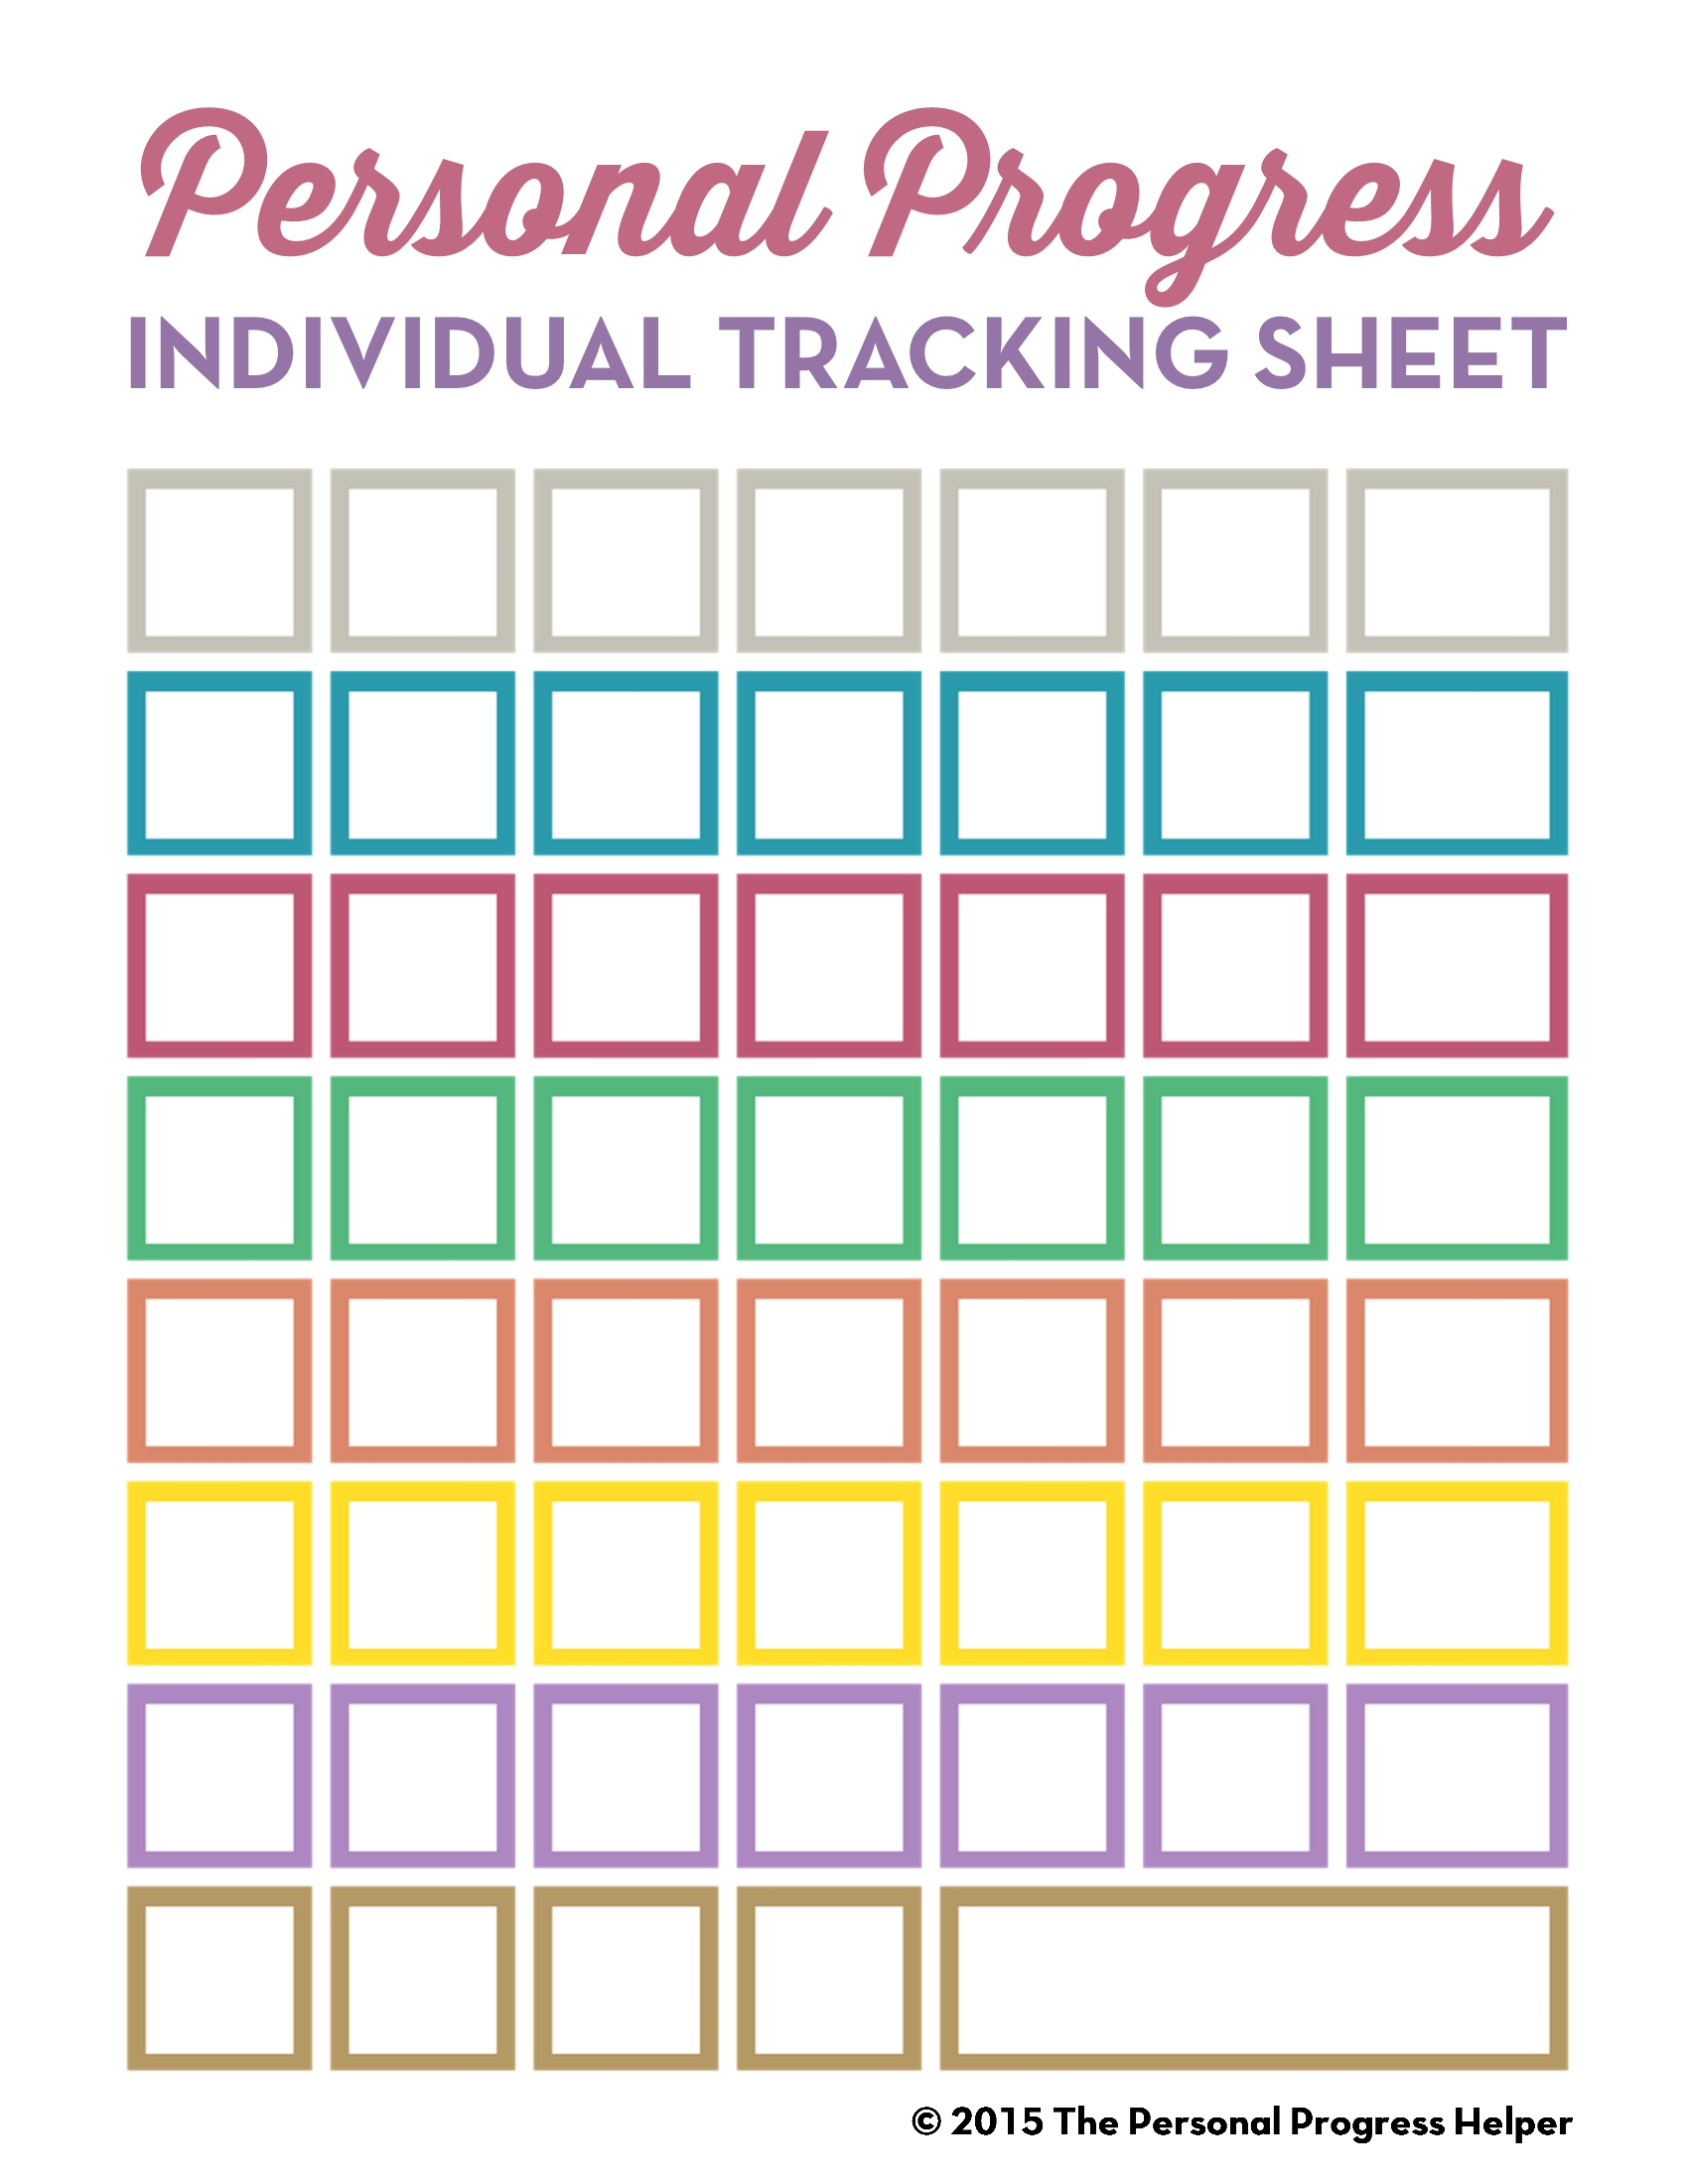 Personal Progress Individual Tracking Sheet